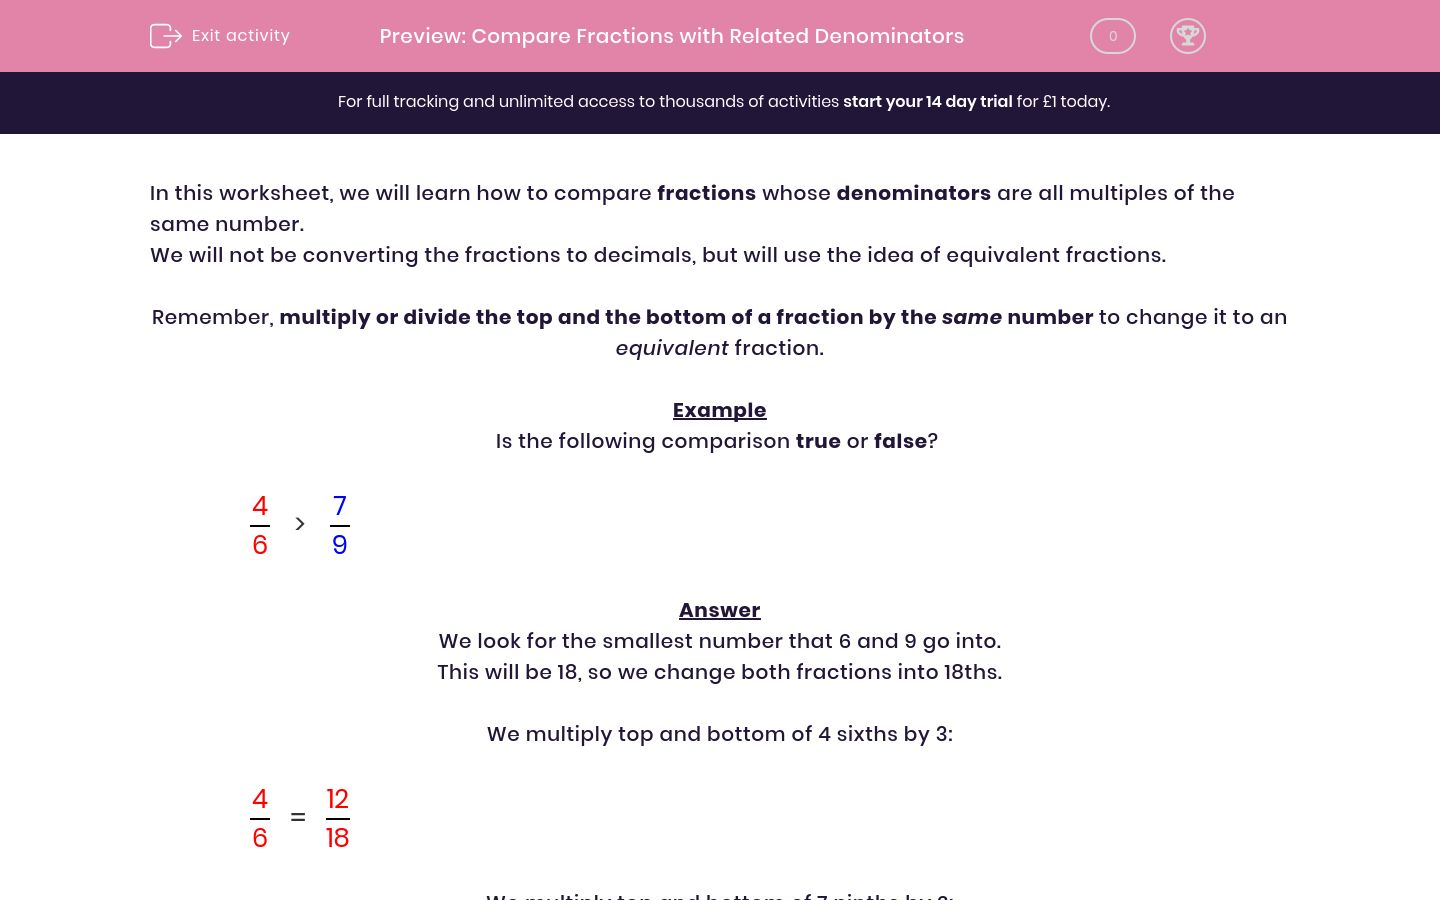 'Compare Fractions with Related Denominators' worksheet